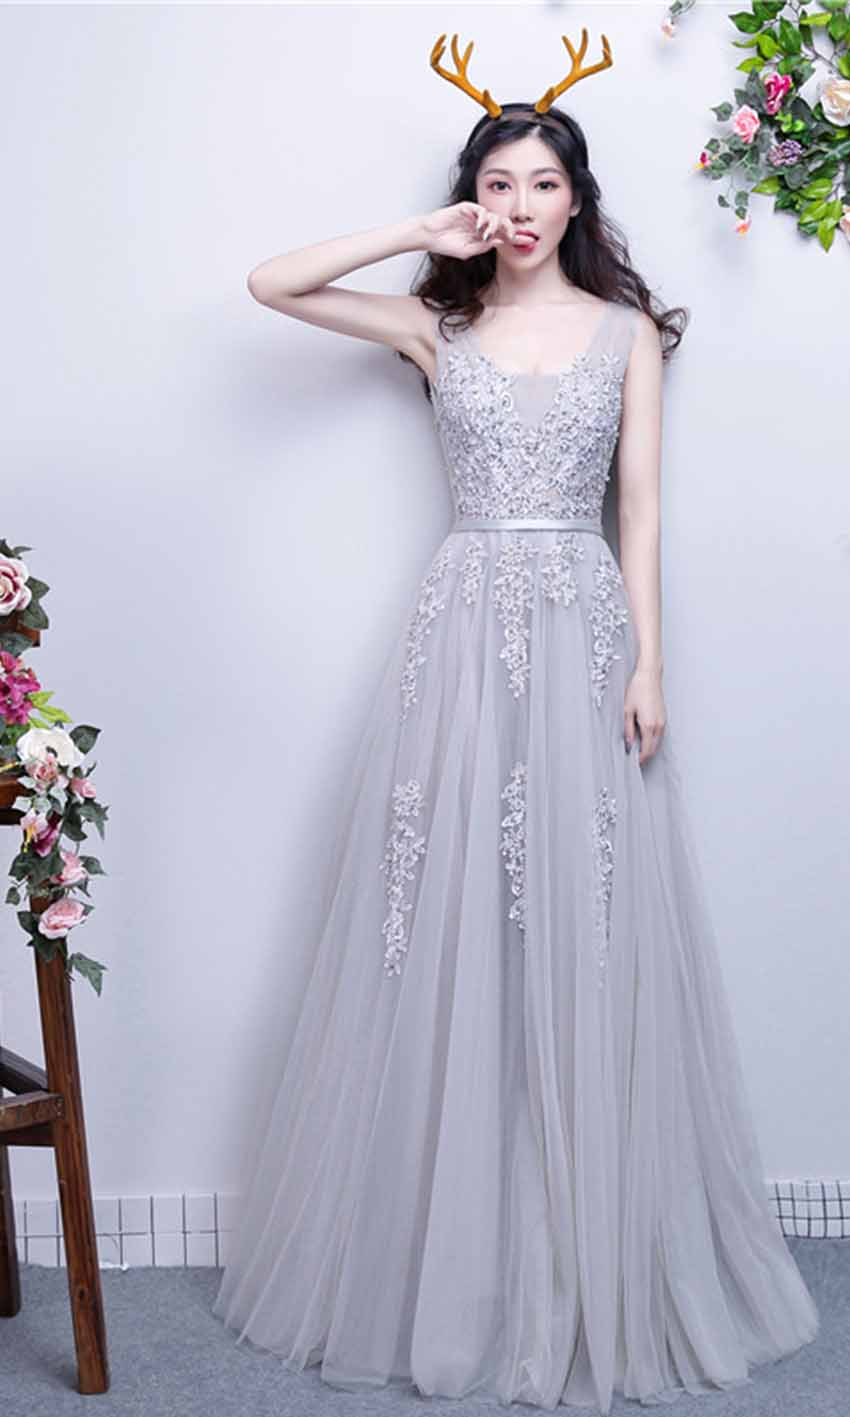 Applique Lace V-neck Long Grey Prom Gowns with Straps KSP451 [KSP451 ...